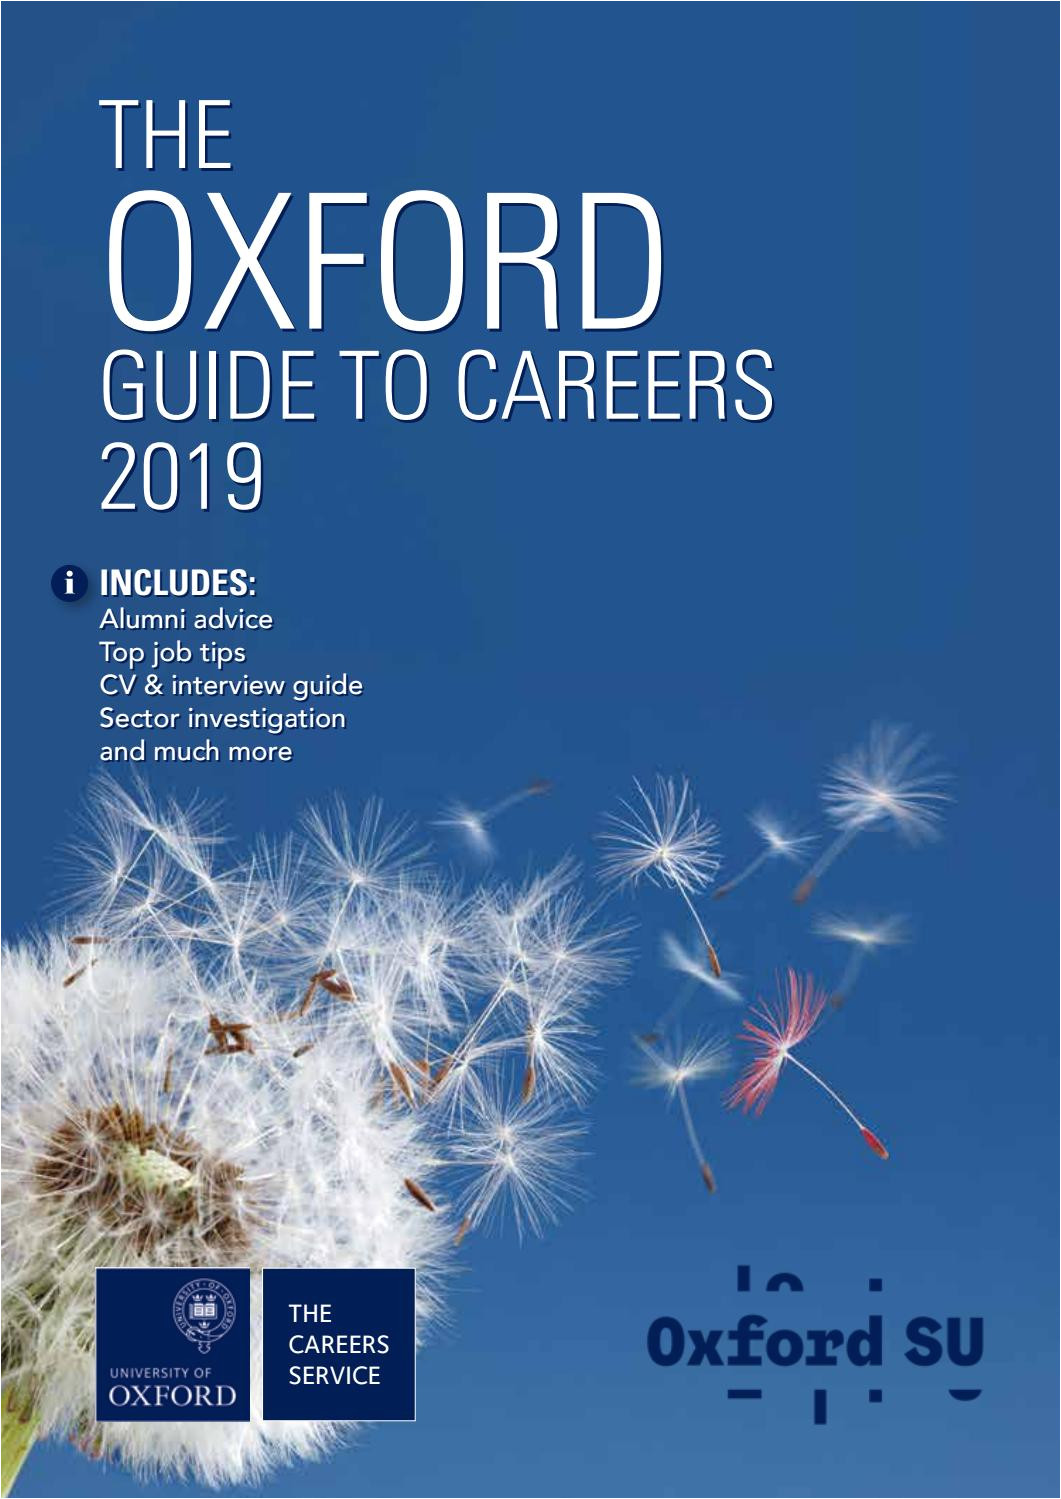 Oxford House San Antonio Vacancies the Oxford Guide to Careers 2019 by Oxford University Careers